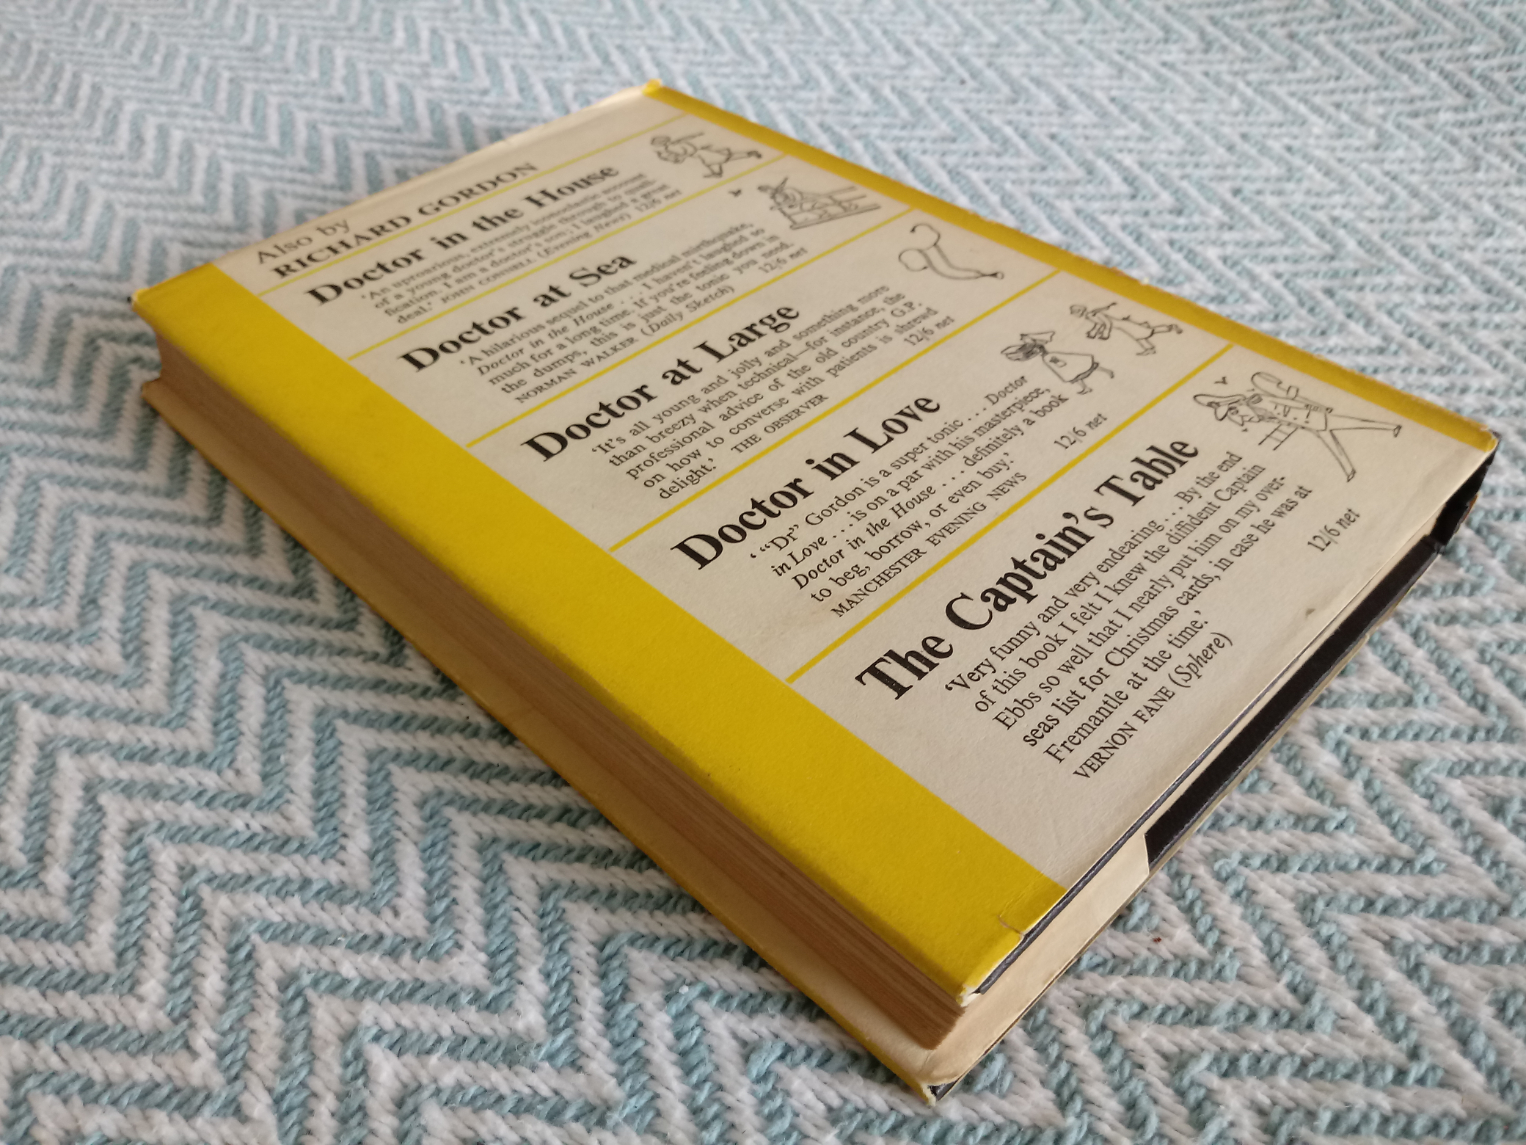 5 x Richard Gordon hardback books Doctor At Sea 219 pages published 1954 in good condition has dings - Image 2 of 3